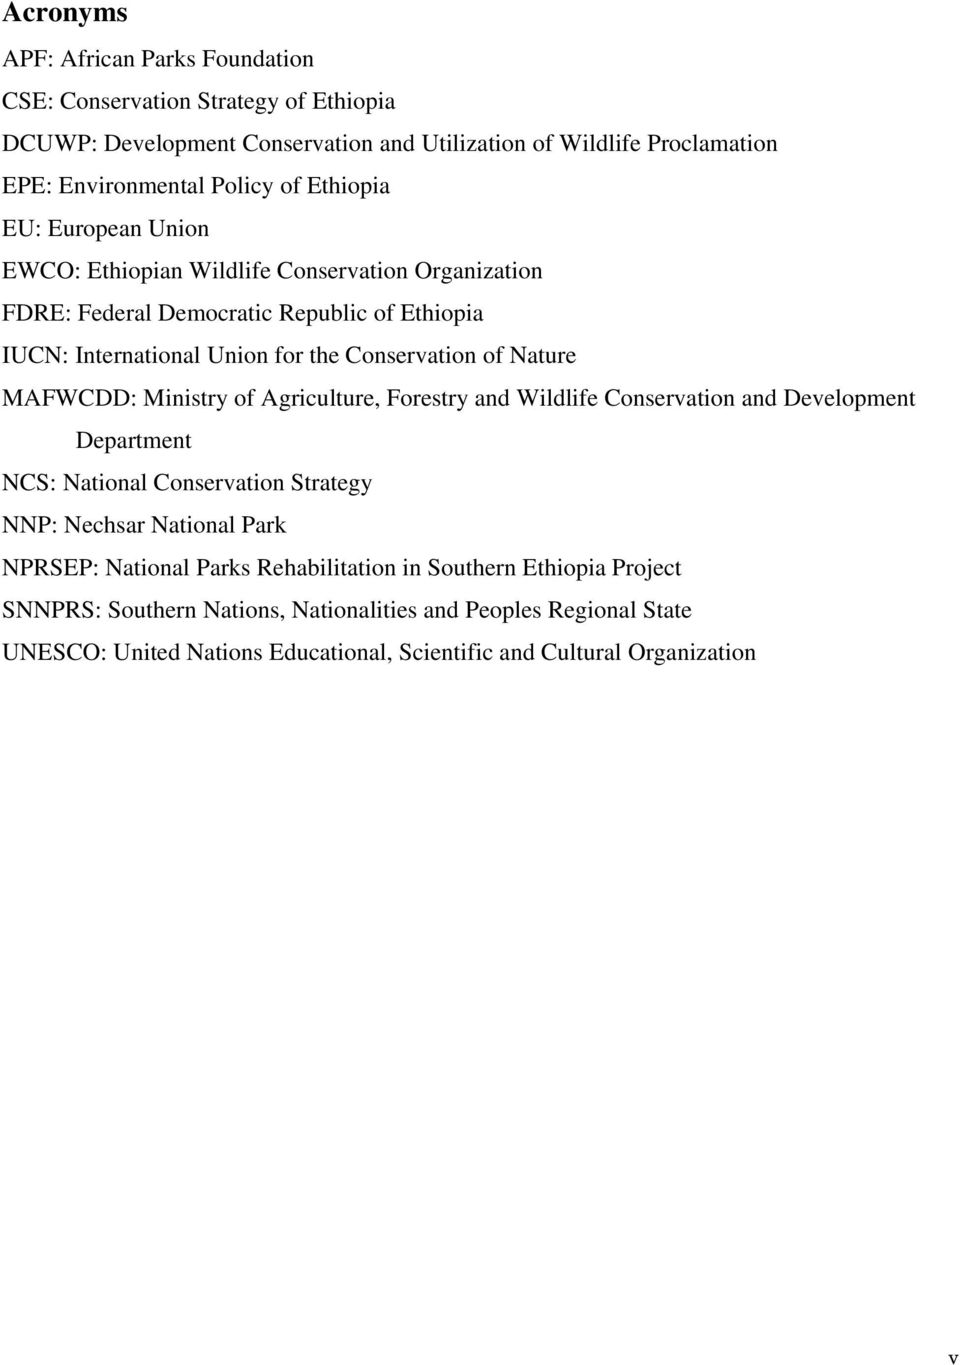 MAFWCDD: Ministry of Agriculture, Forestry and Wildlife Conservation and Development Department NCS: National Conservation Strategy NNP: Nechsar National Park NPRSEP: National Parks